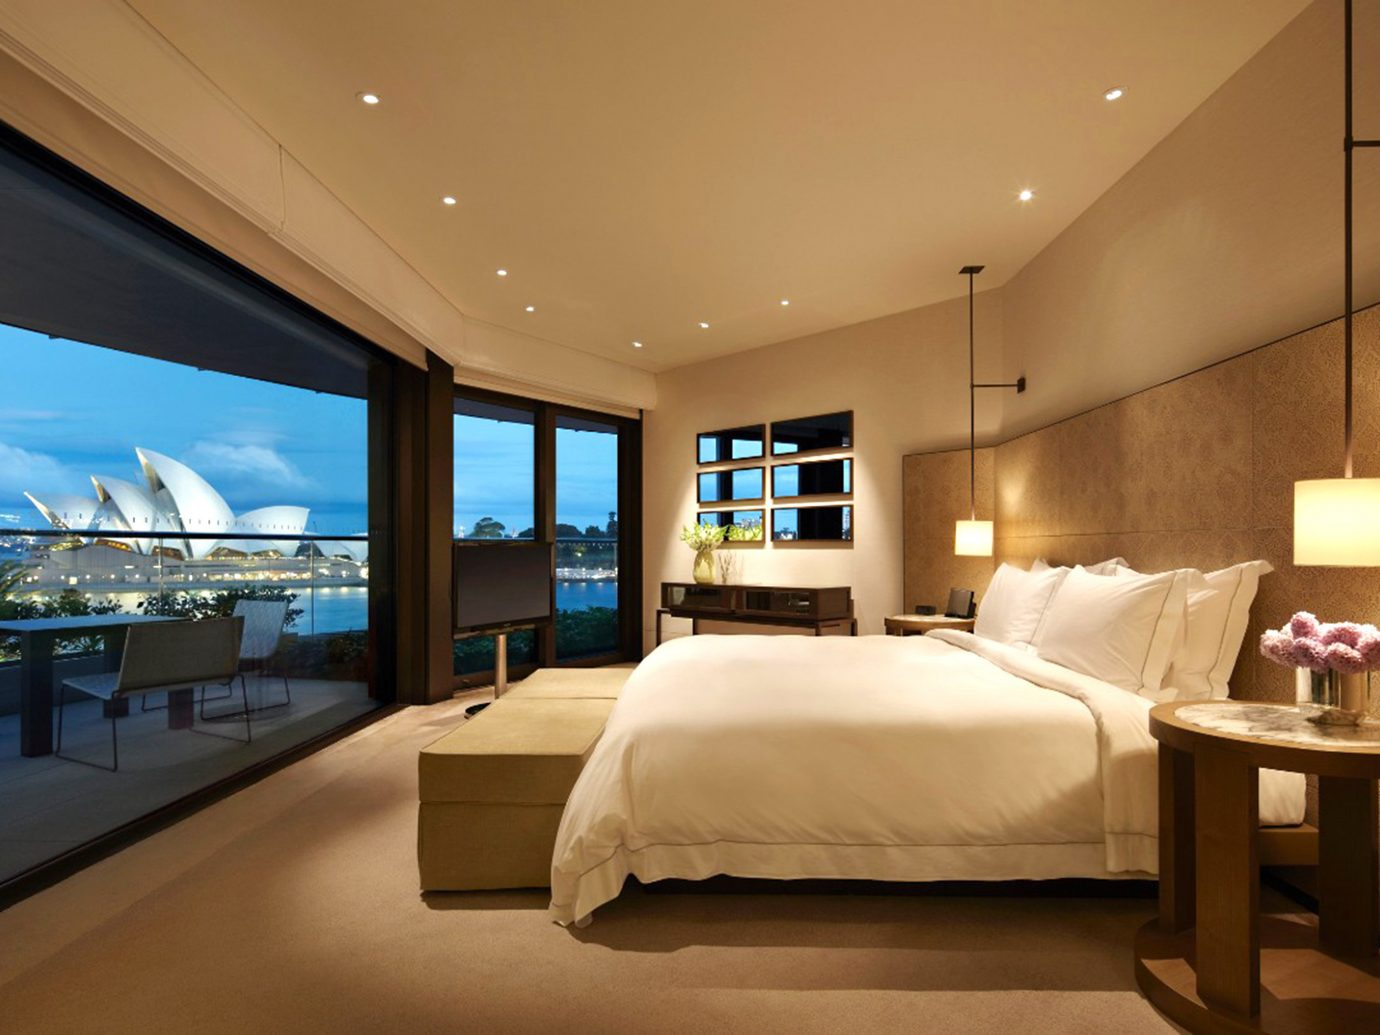 Bedroom Hotels Luxury Modern Patio Scenic views Suite Trip Ideas indoor floor ceiling wall bed hotel room property window estate interior design yacht home real estate living room passenger ship